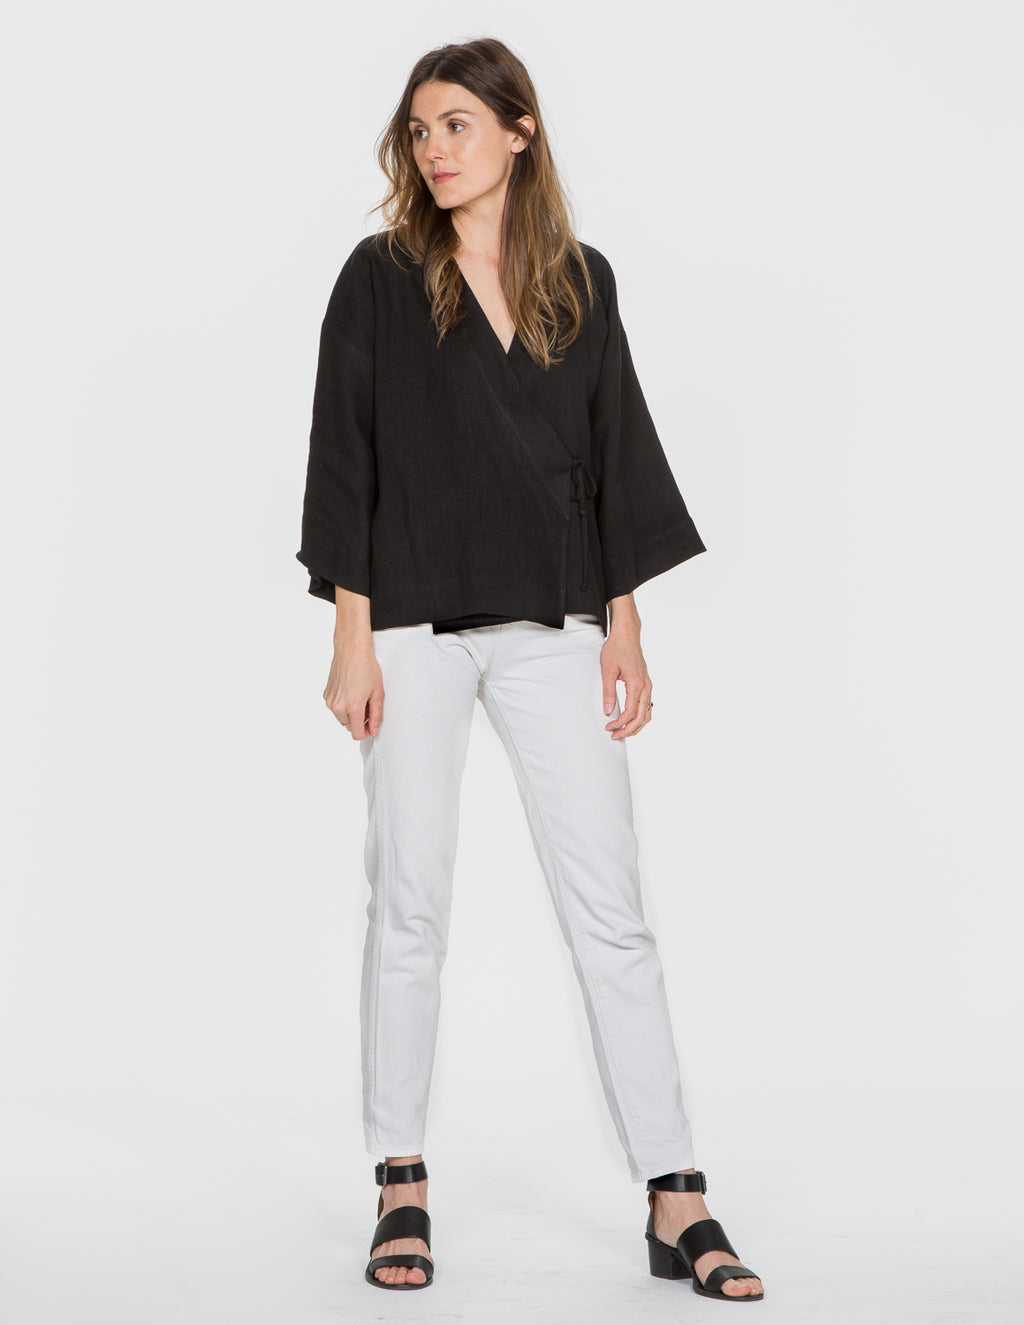 Chapter Goods | Breastfeeding-Friendly Clothes | Kimono Top in Black Ink (Black Linen)